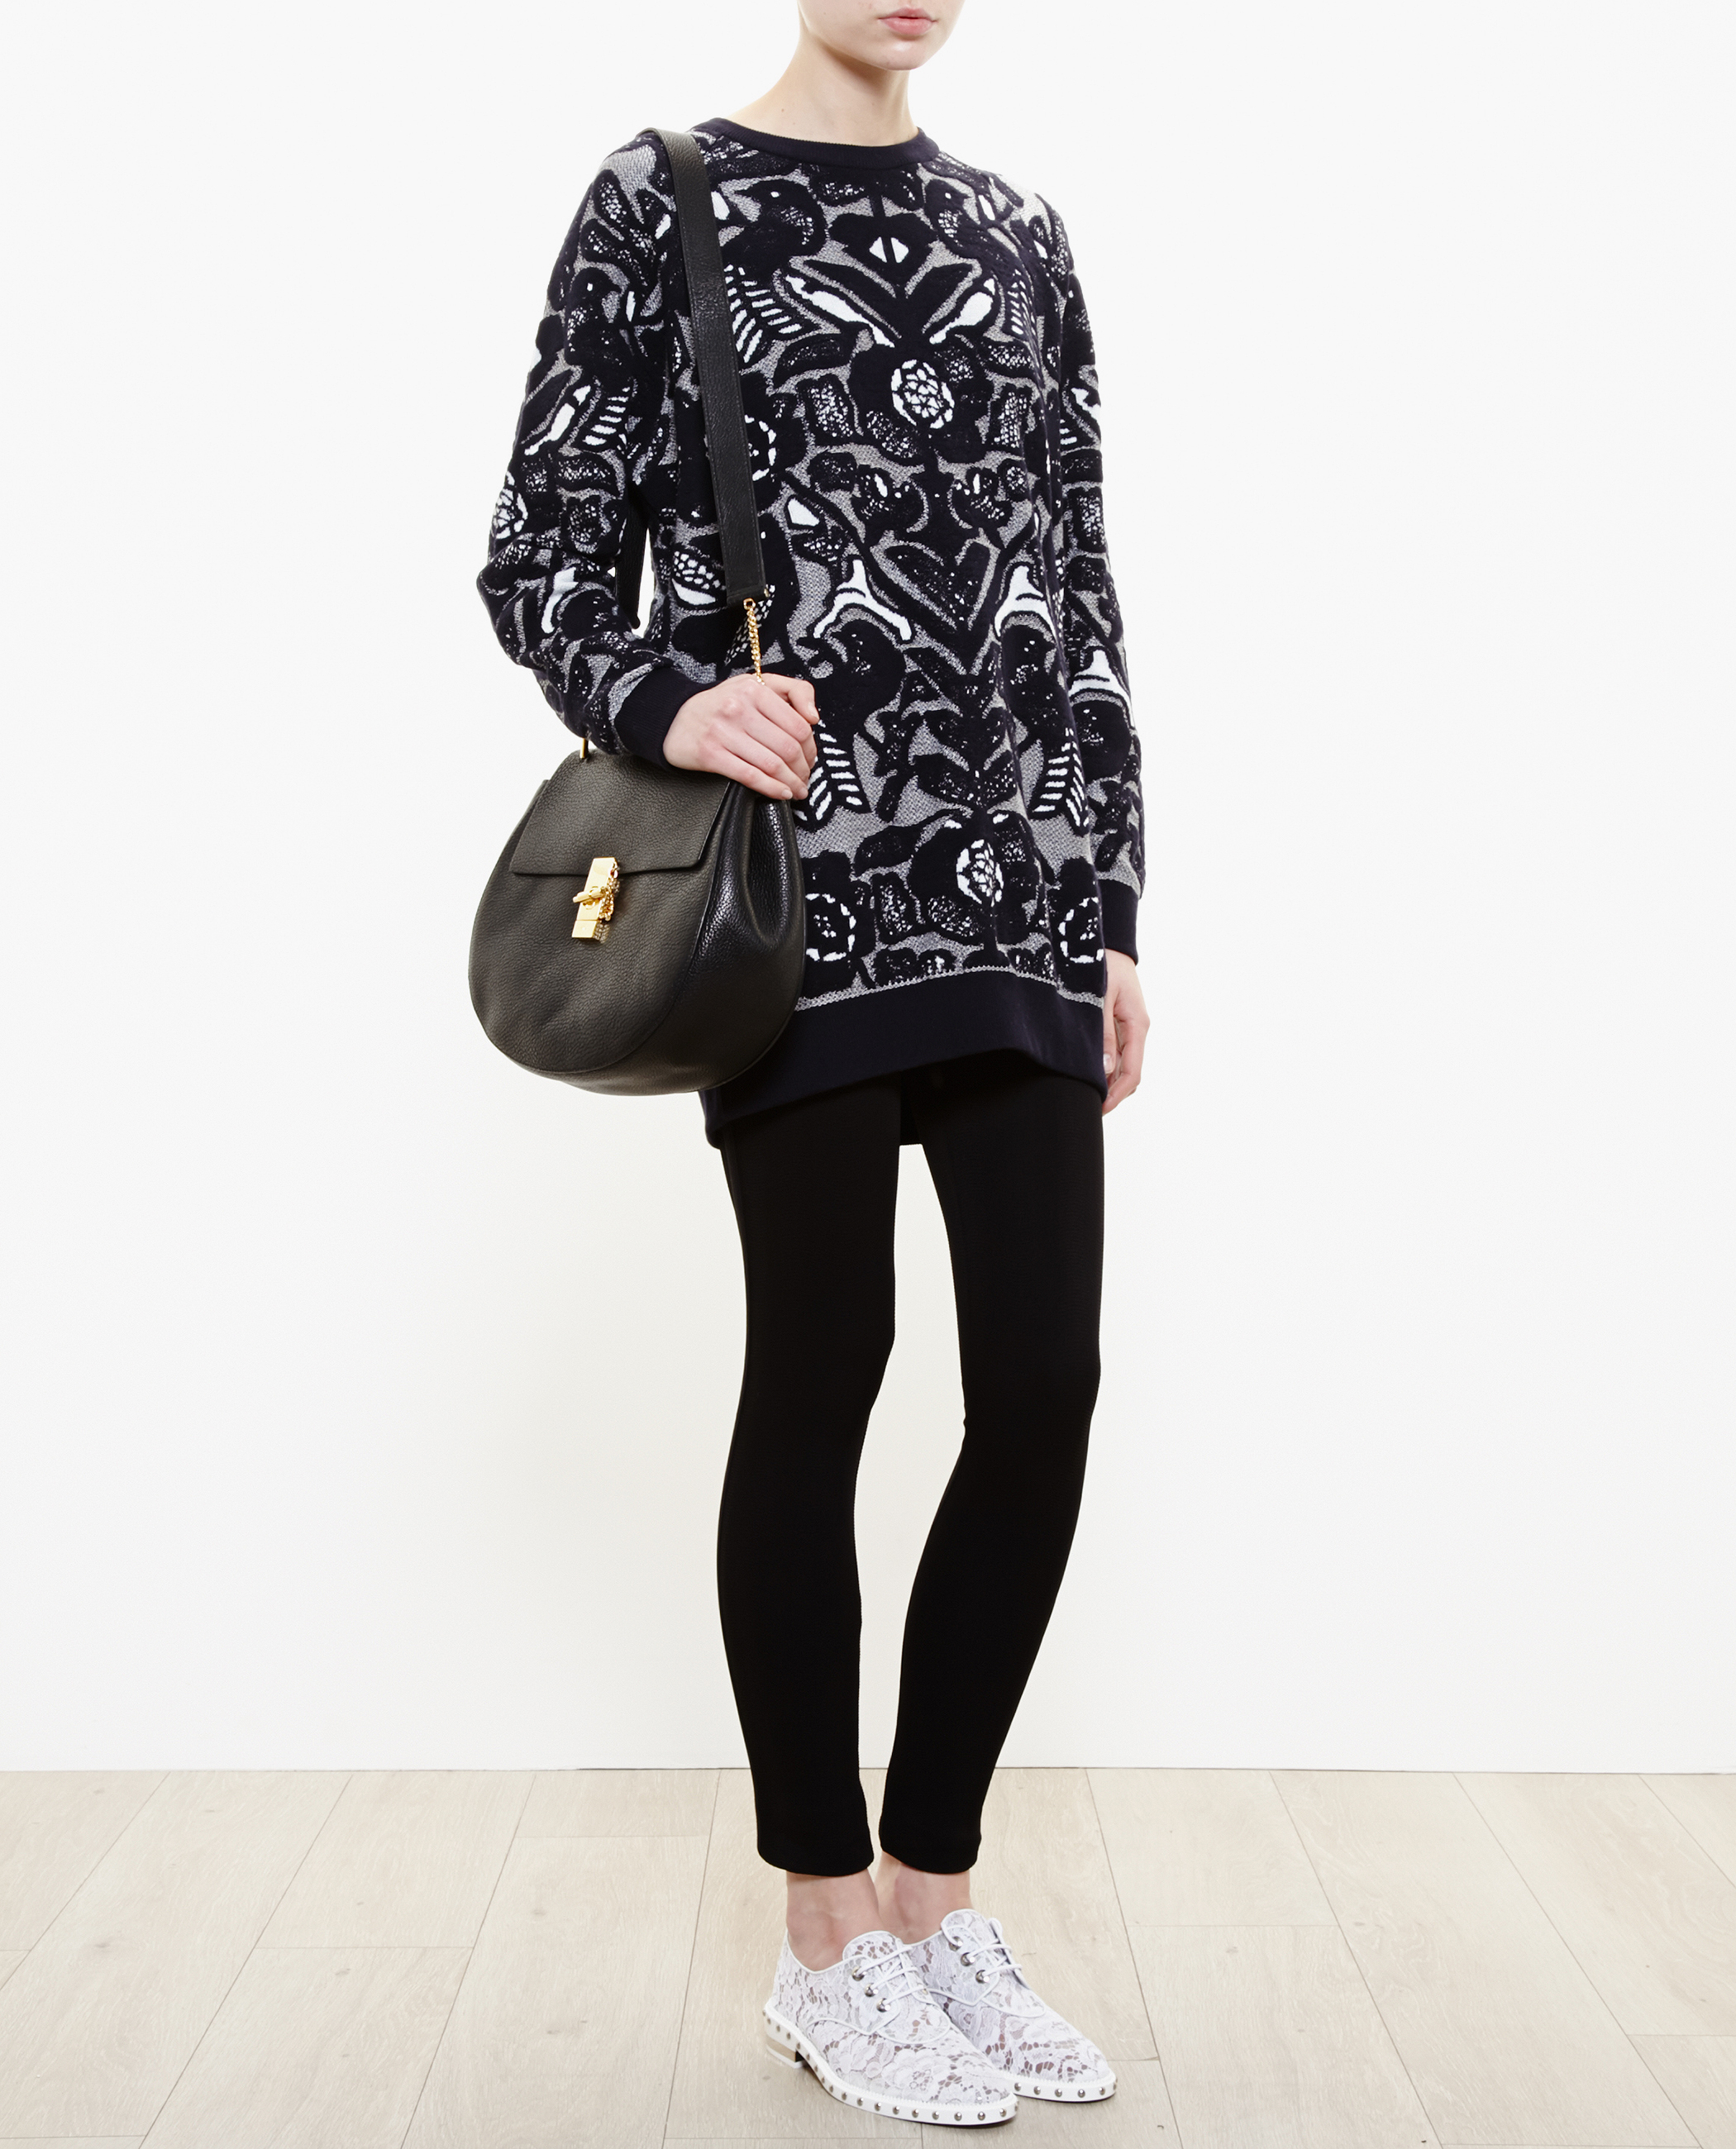 Chloé Flower Jacquard Sweater in Black